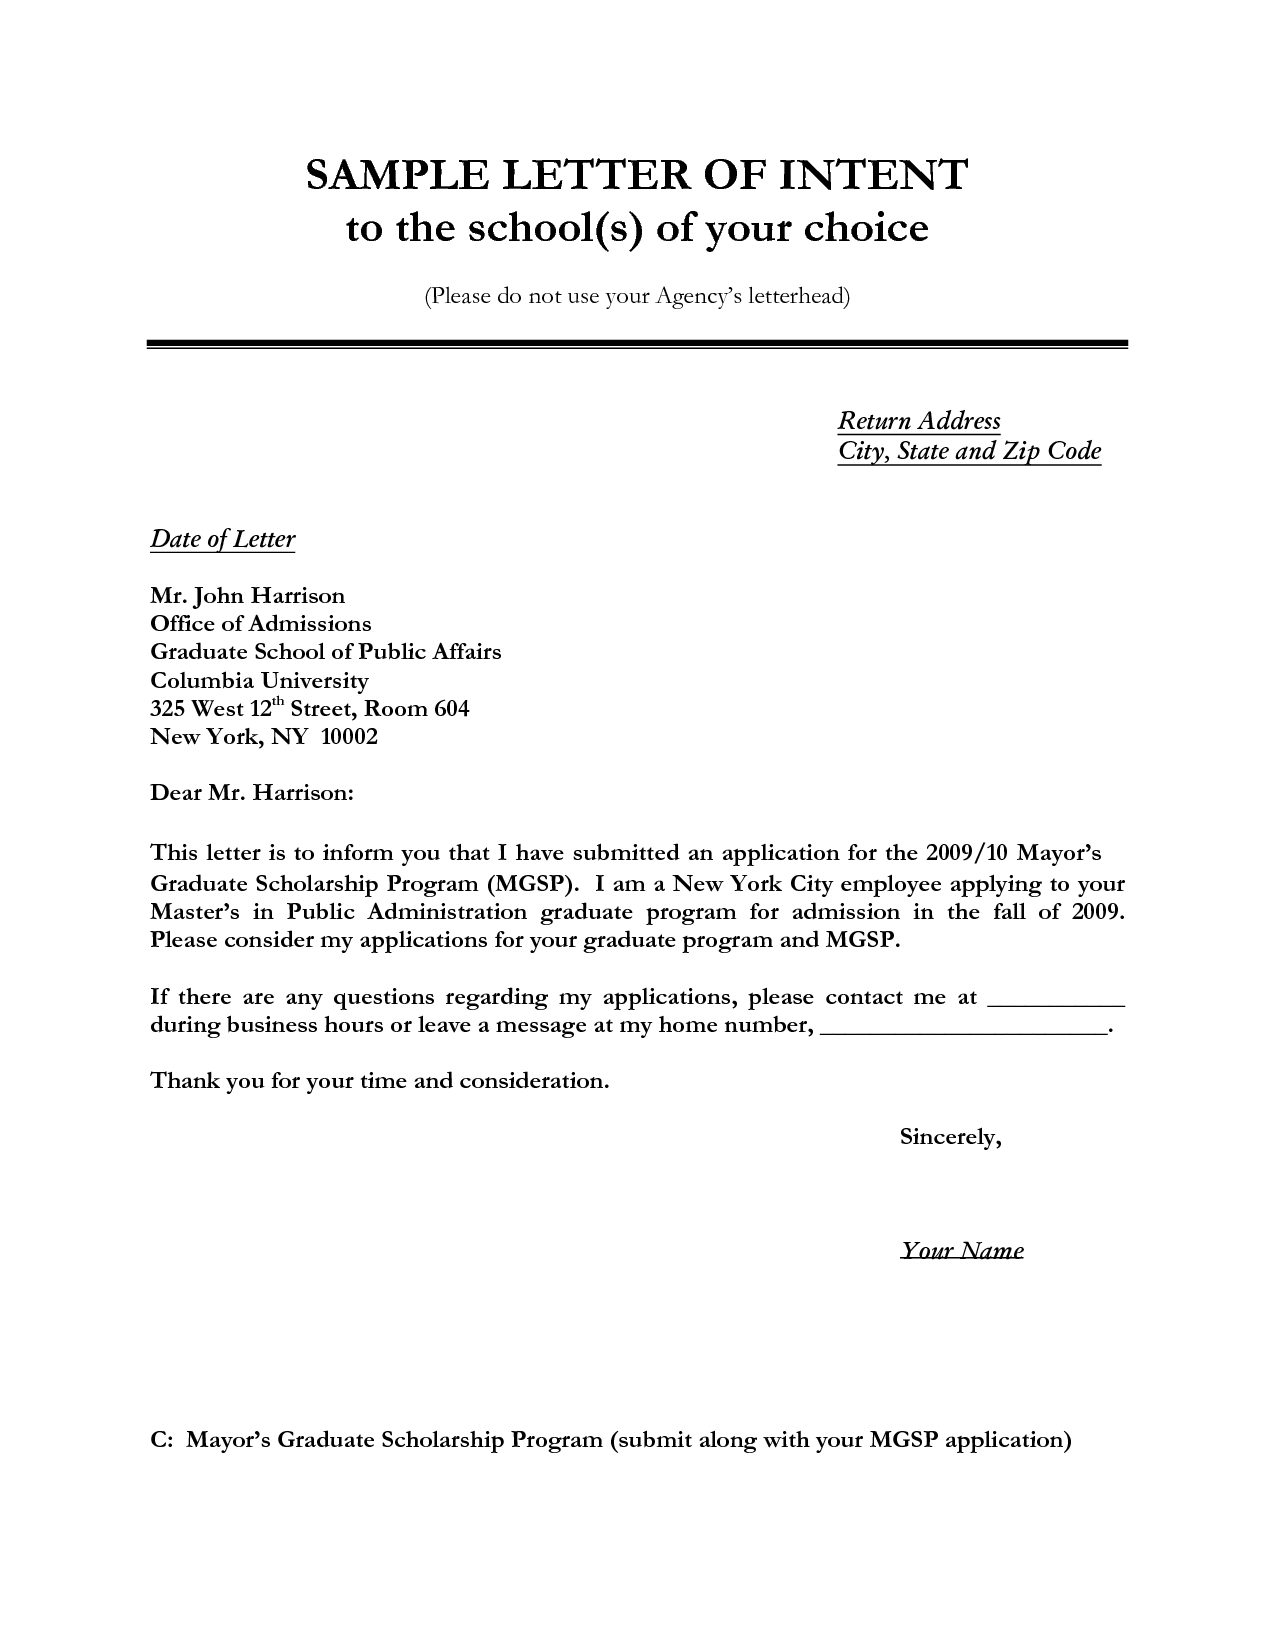 Letter Of Intent Template Free - Letter Of Intent Sample